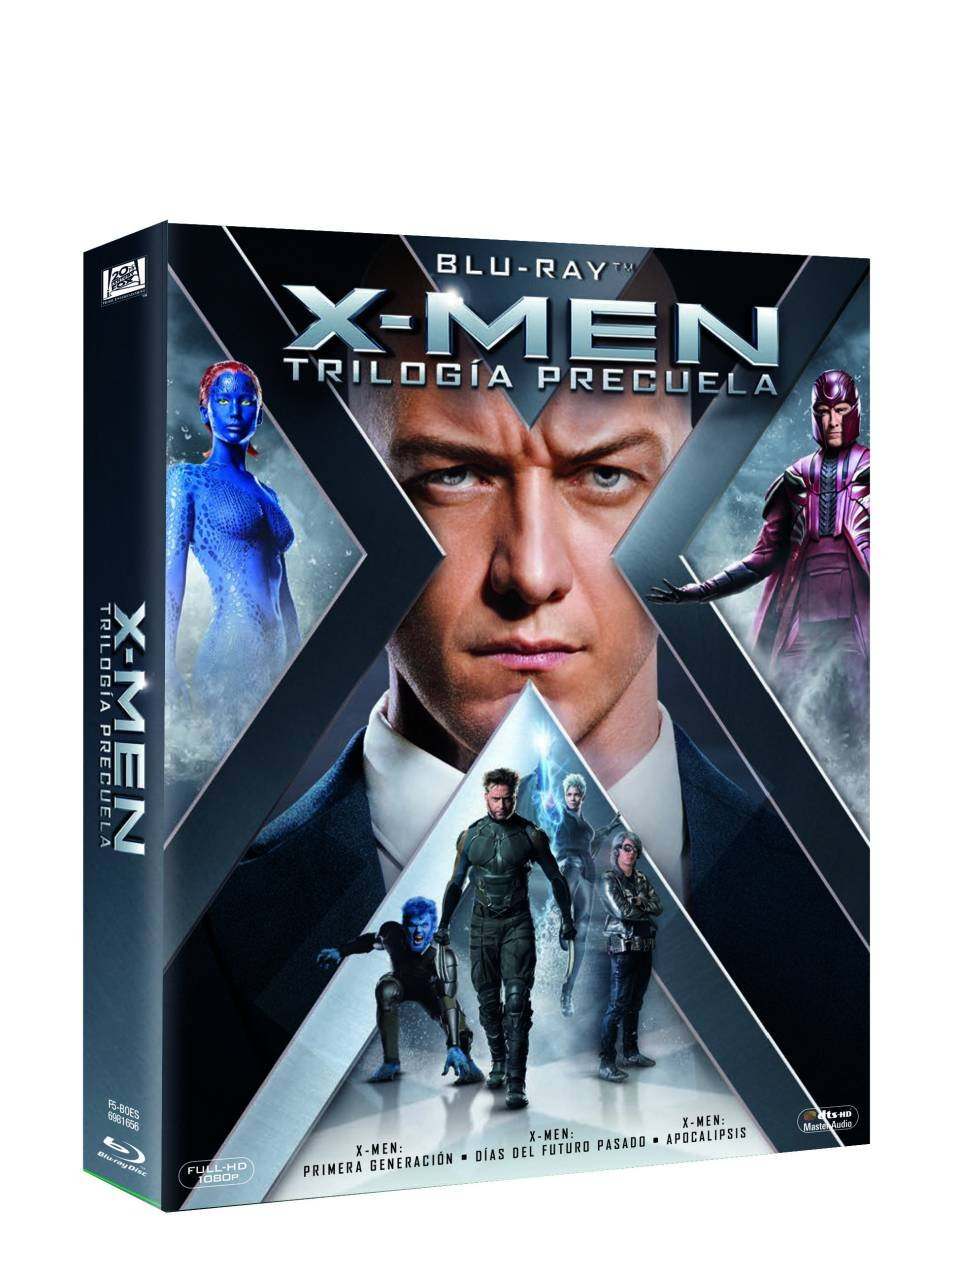 Trilogía X-Men Precuela Blu-Ray [Blu-ray]: Amazon.es: James Mcavoy ...